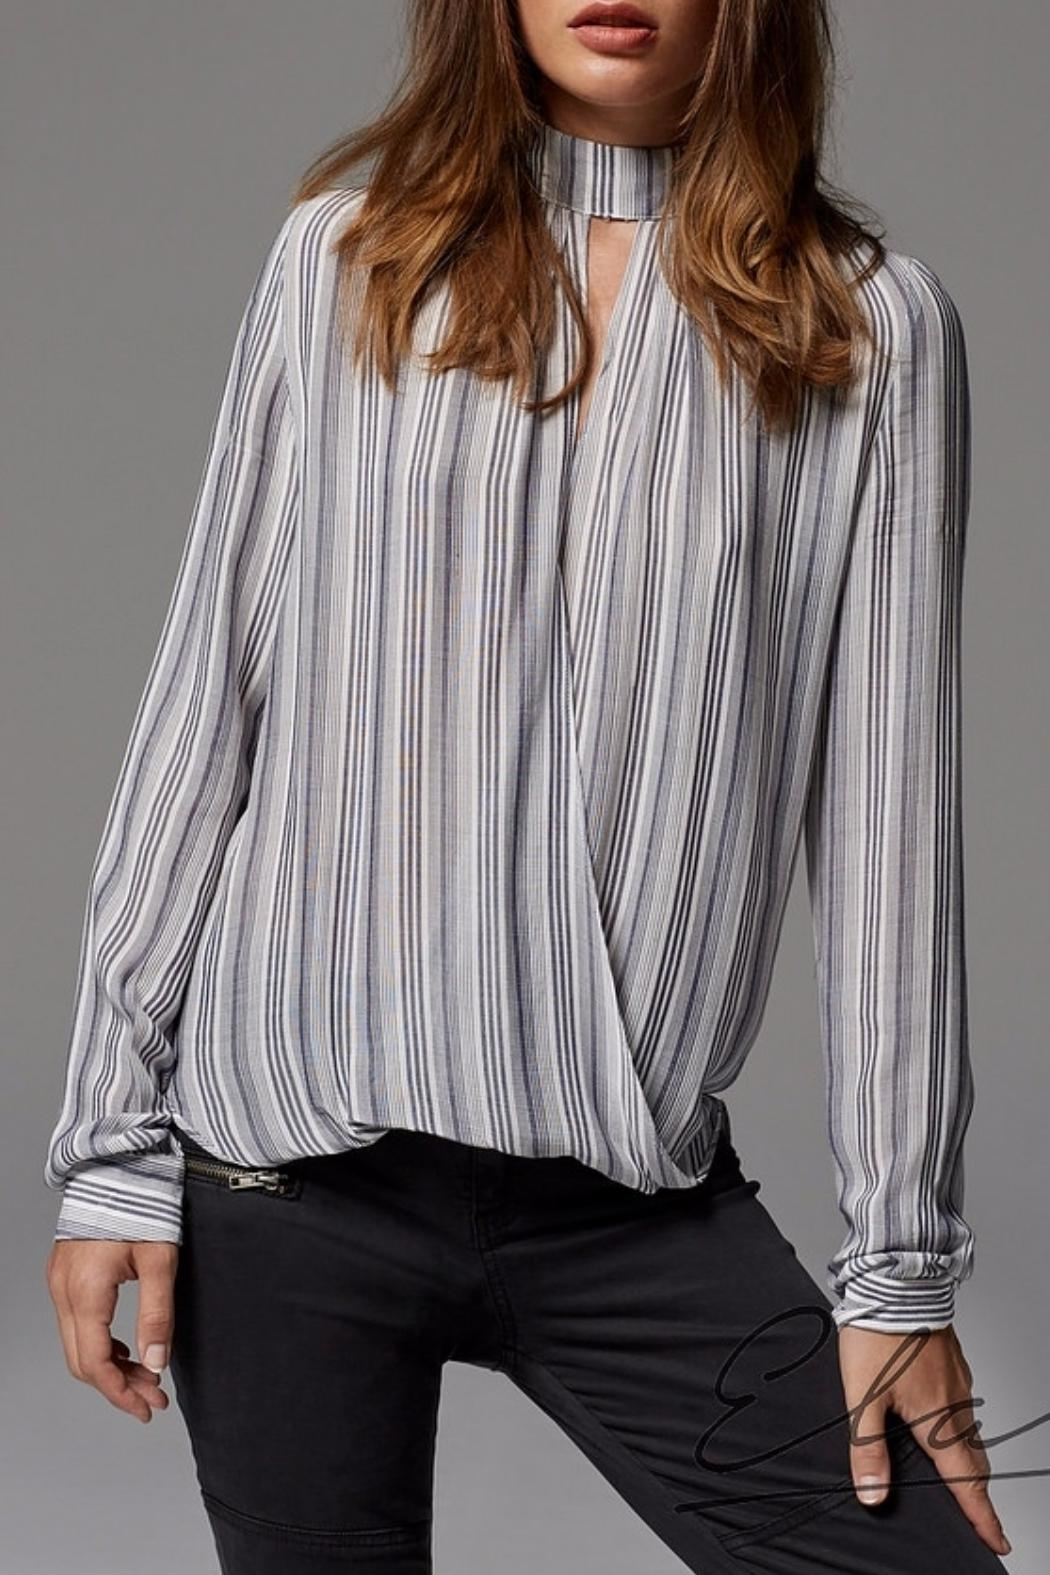 Elan High Neck Blouse - Main Image